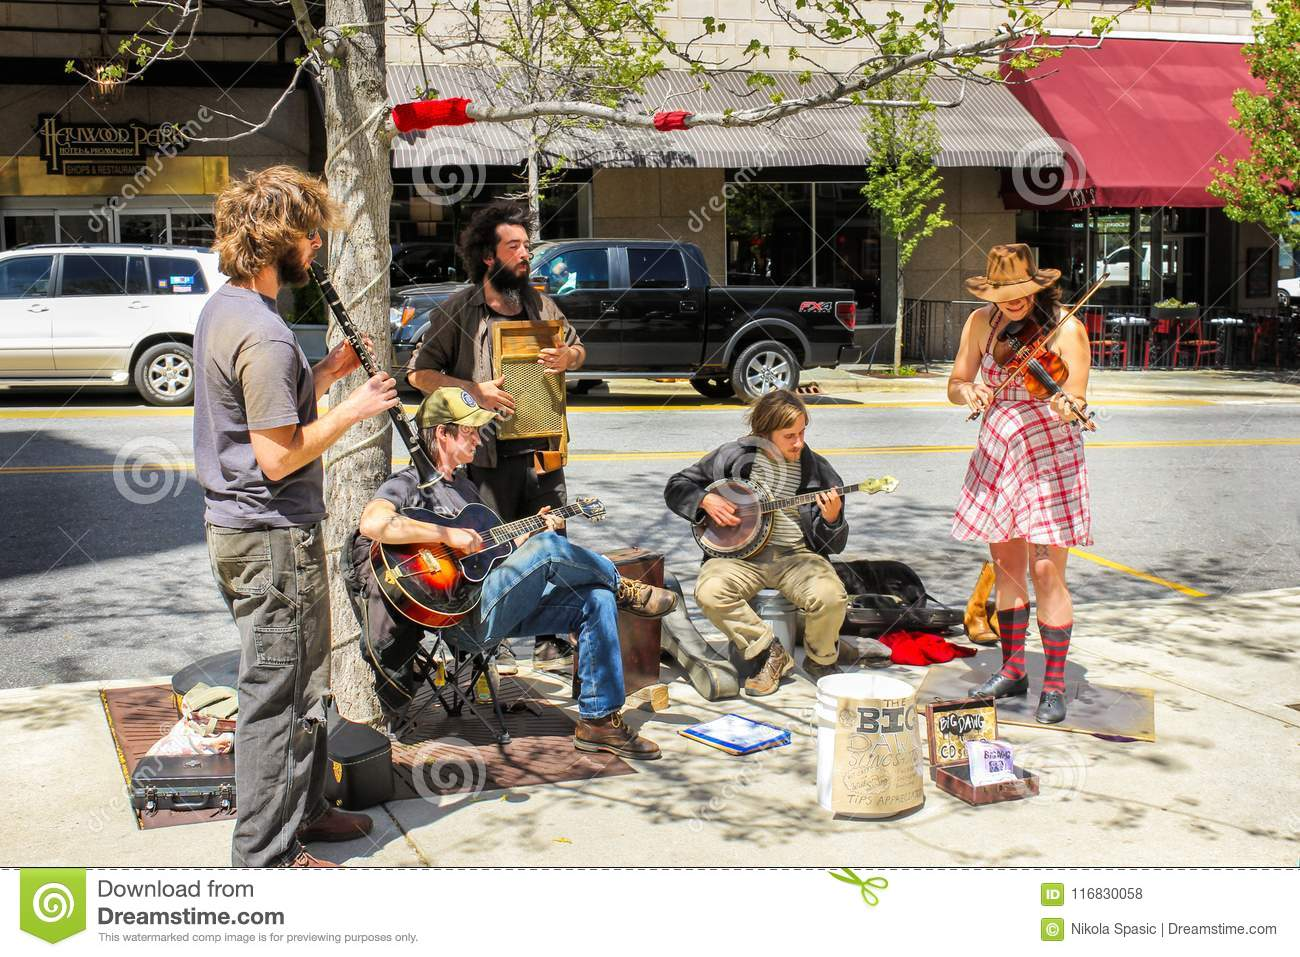 A group of street performers playing on instruments in Asheville in North Carolina